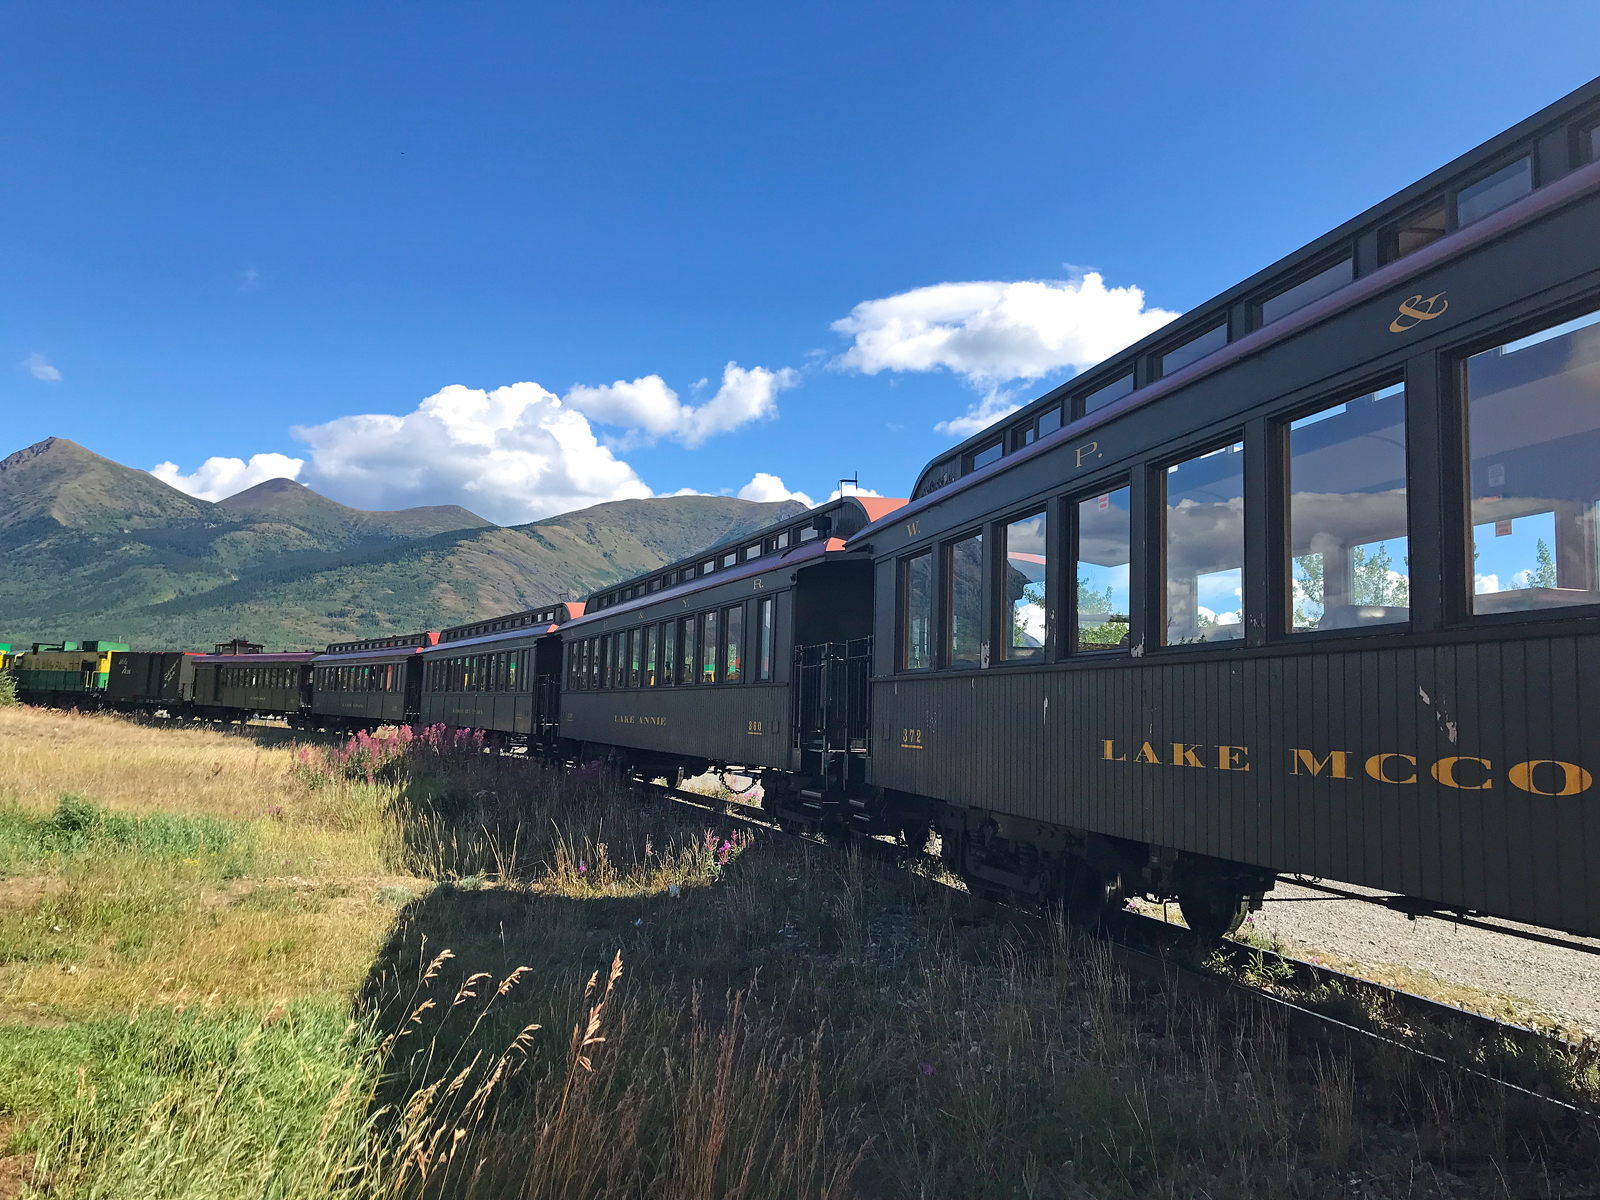 An image of the White Pass and Yukon Route train